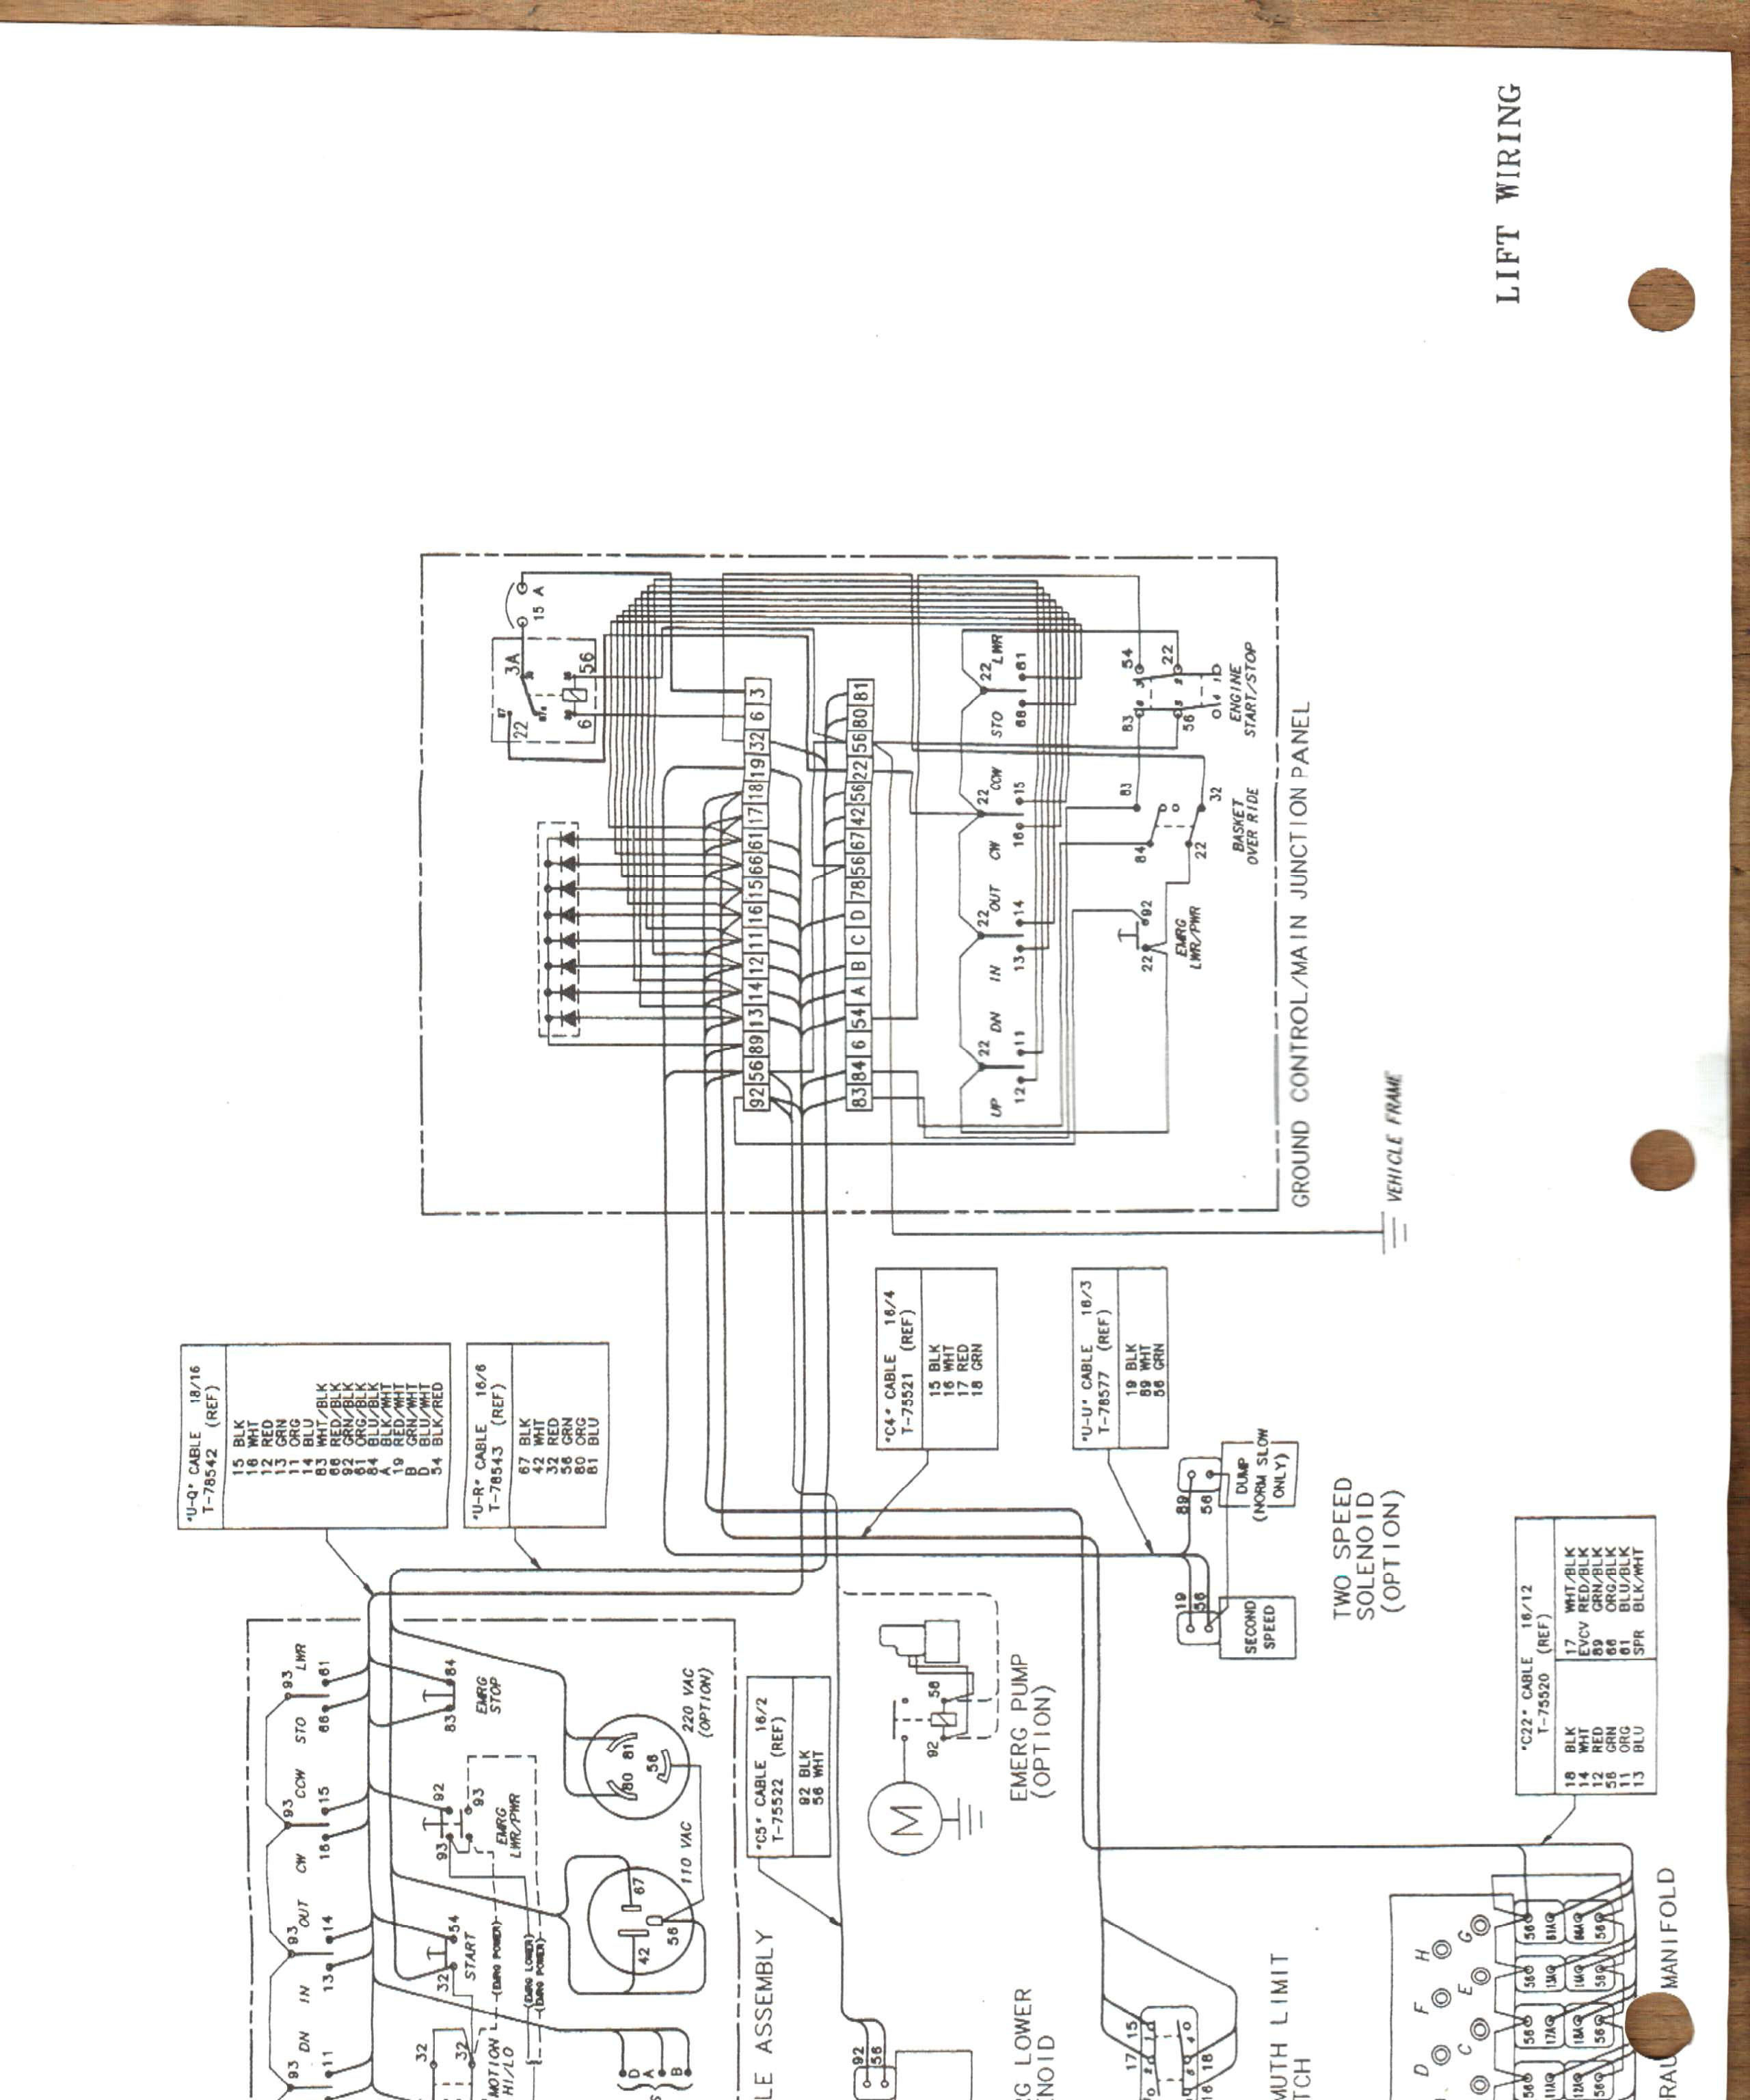 wb21x5243 wiring diagram Collection-telsta boom wiring diagram Download Telsta Bucket Truck Wiring Diagram Collection 8 c DOWNLOAD Wiring Diagram 4-s